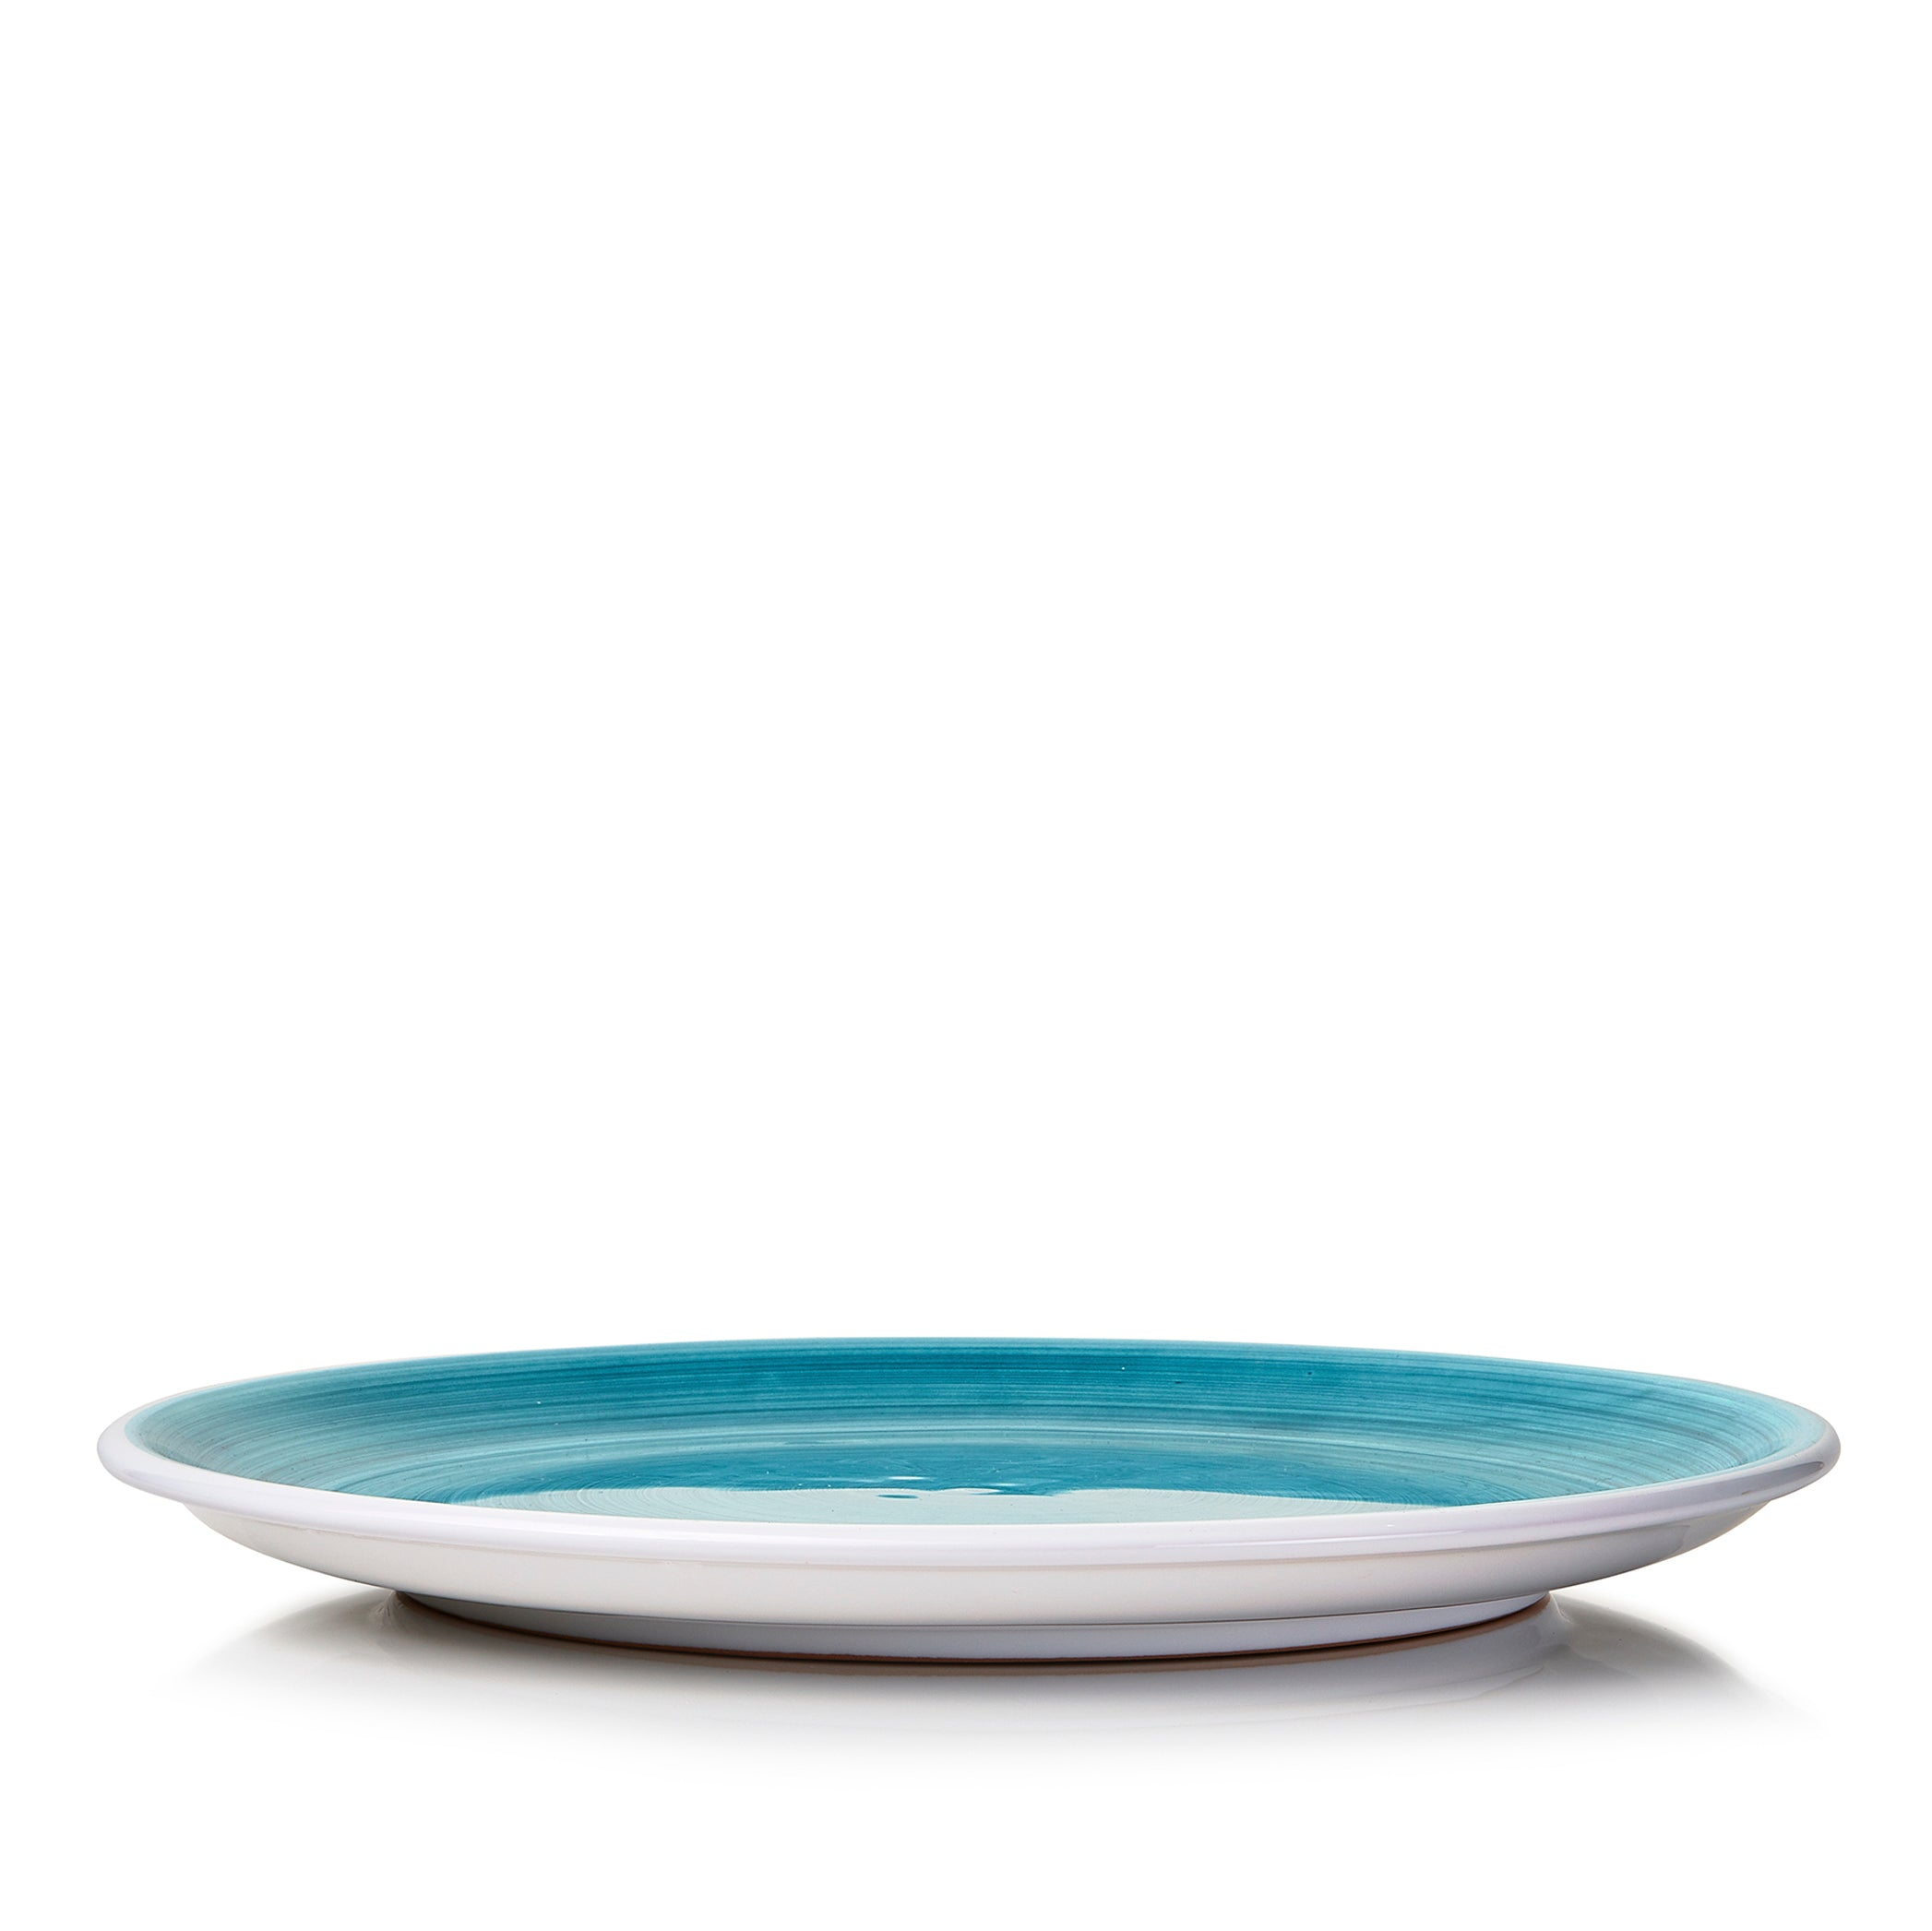 S&B 'Brushed' Ceramic Dinner Plate in Sea Blue, 28cm